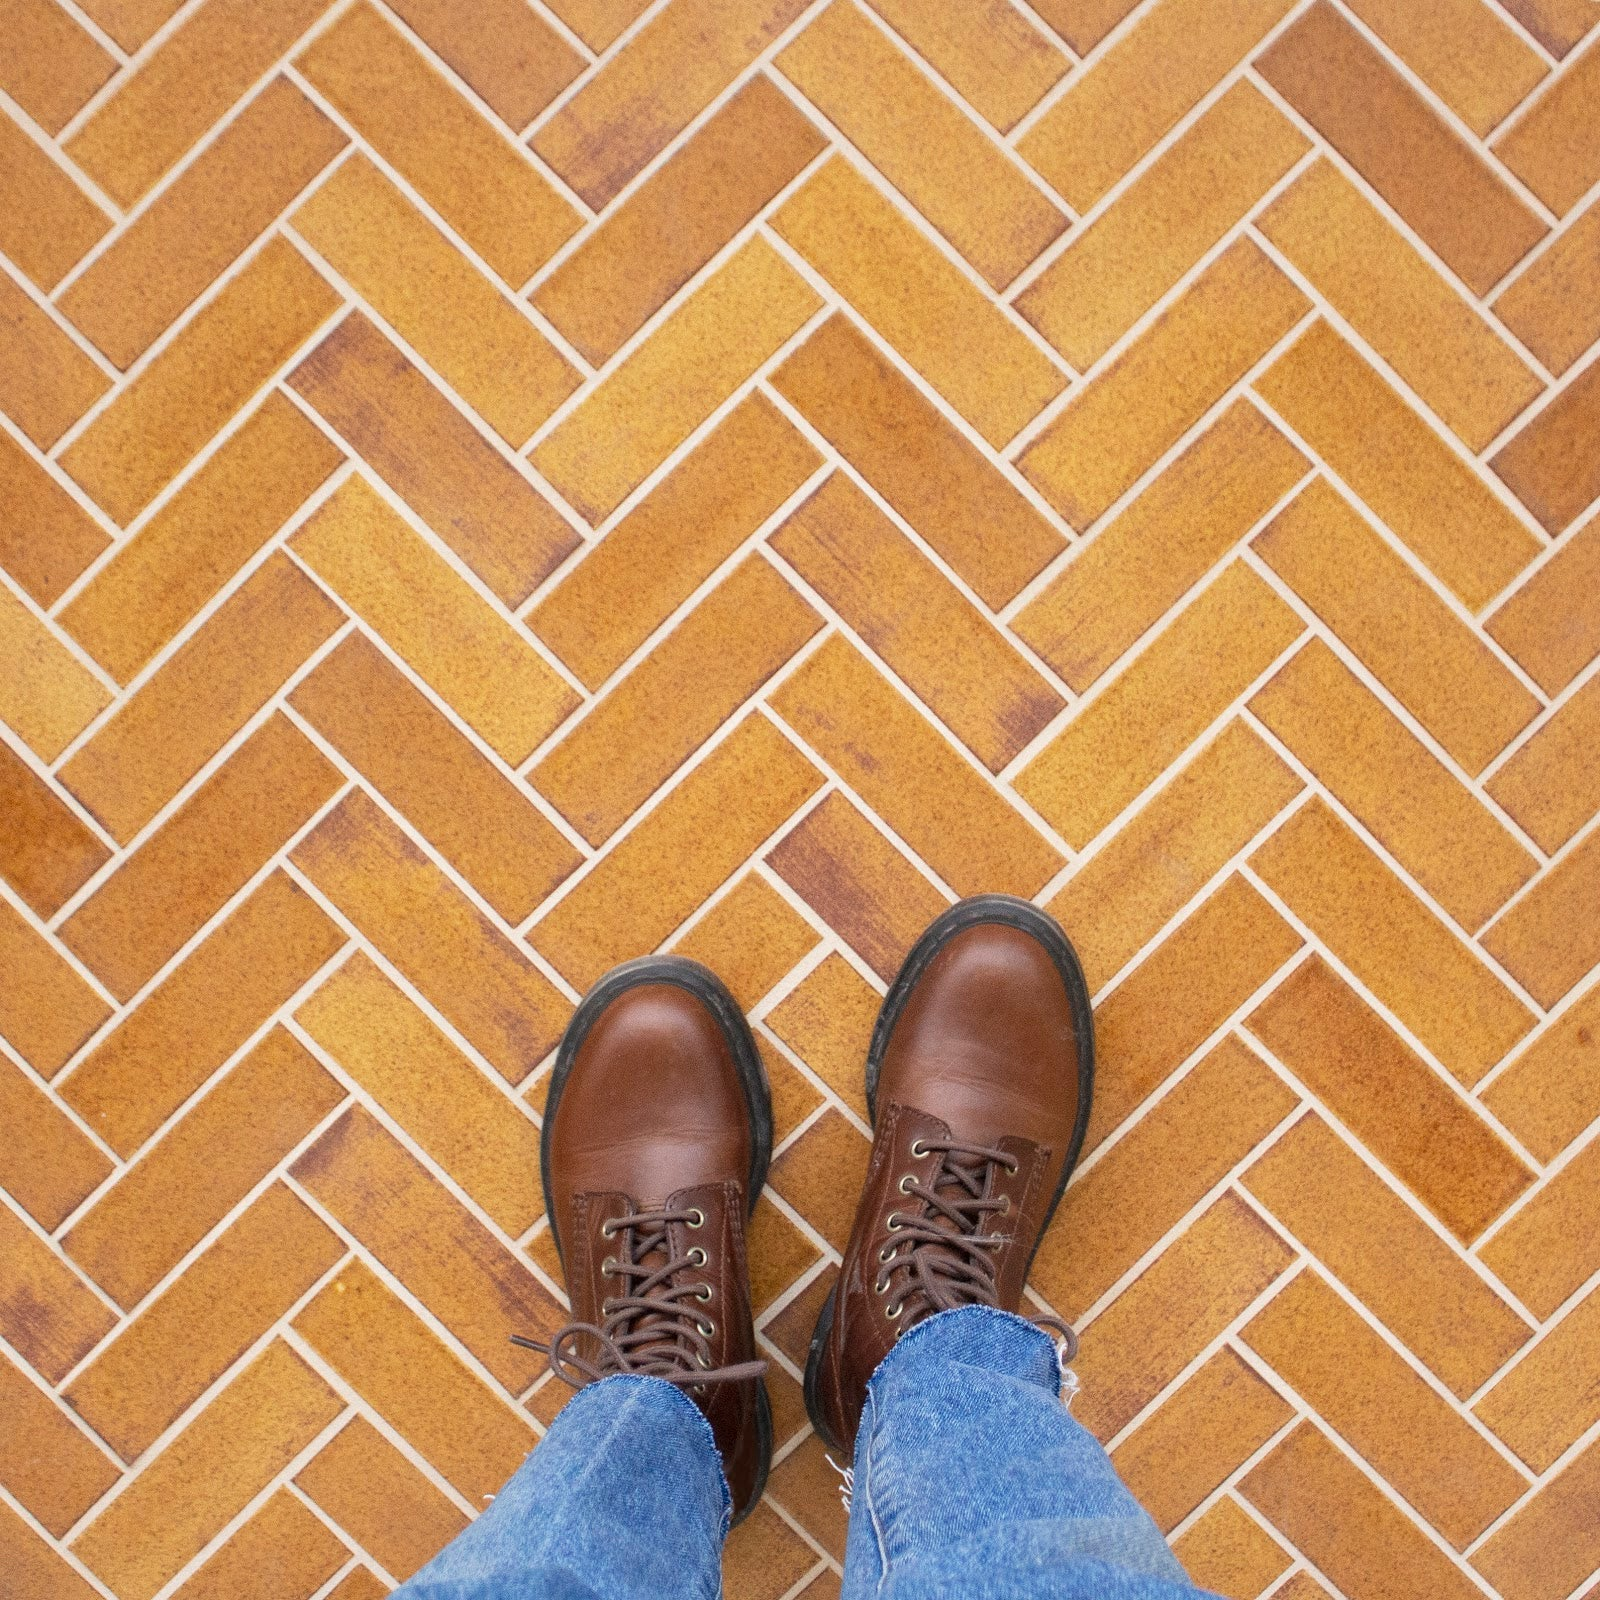 Orange Herringbone Tile Floor